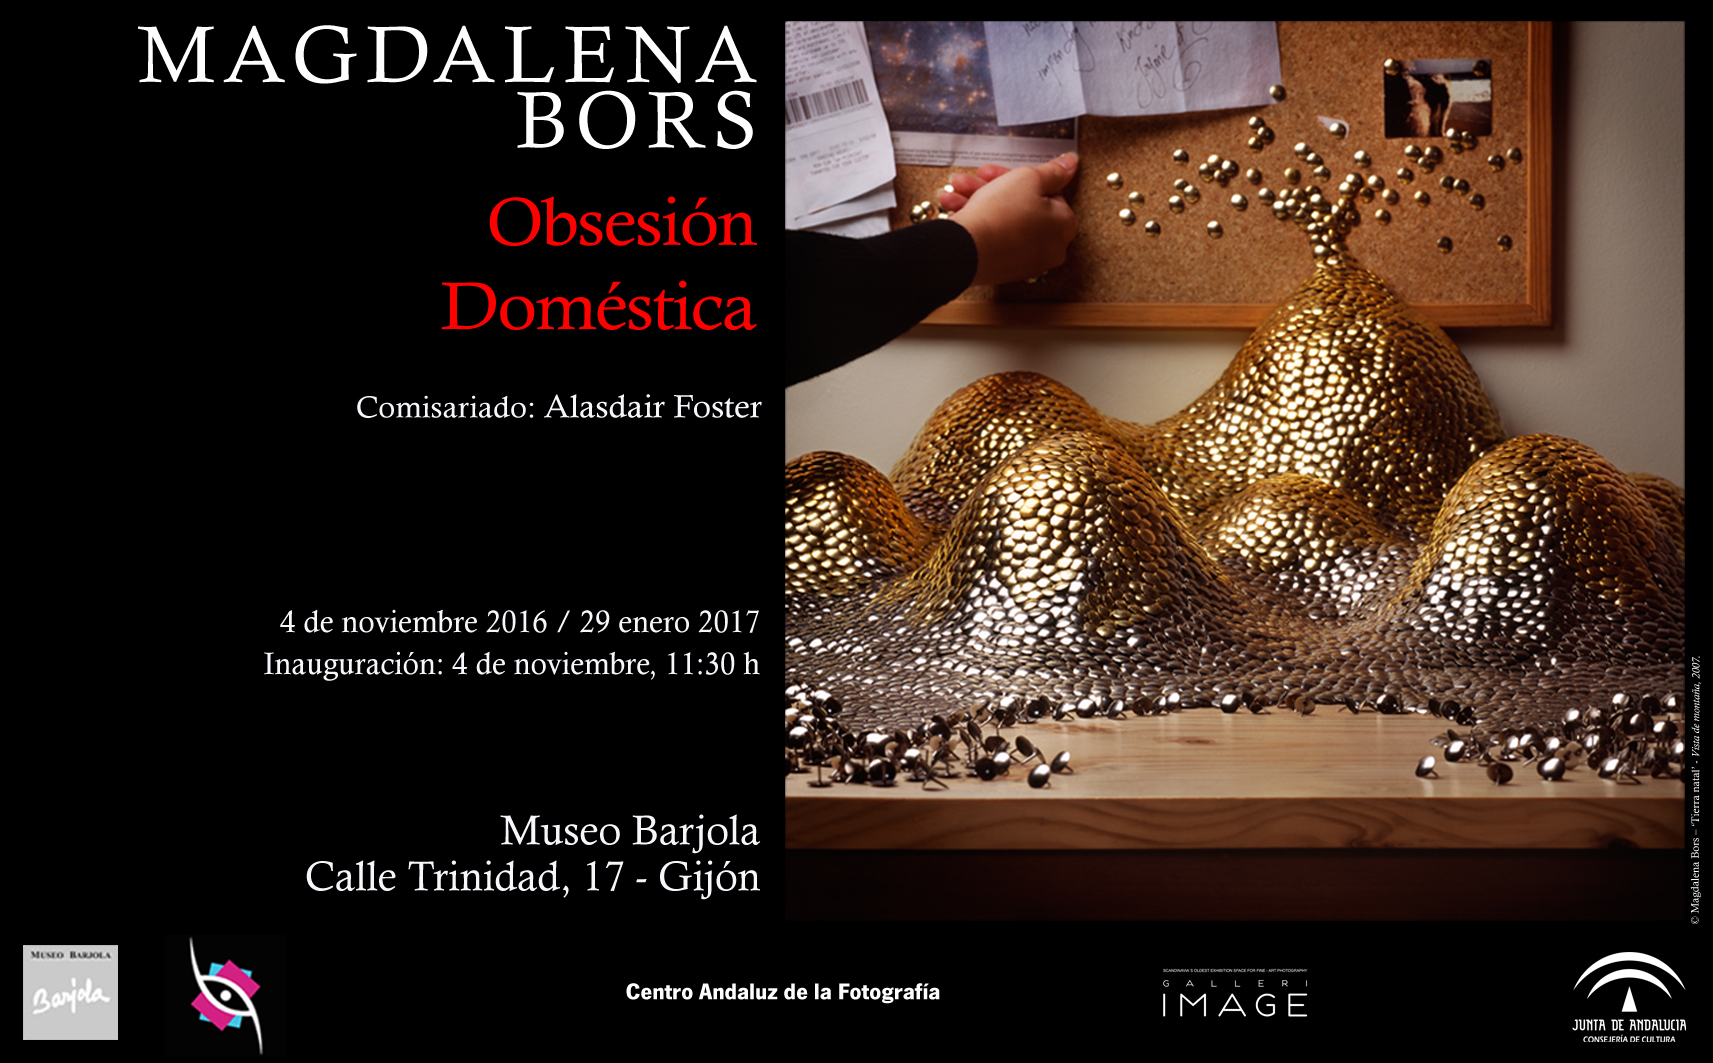 Poster from Museo Barjola, Gijon, last stop on the exhibition tour